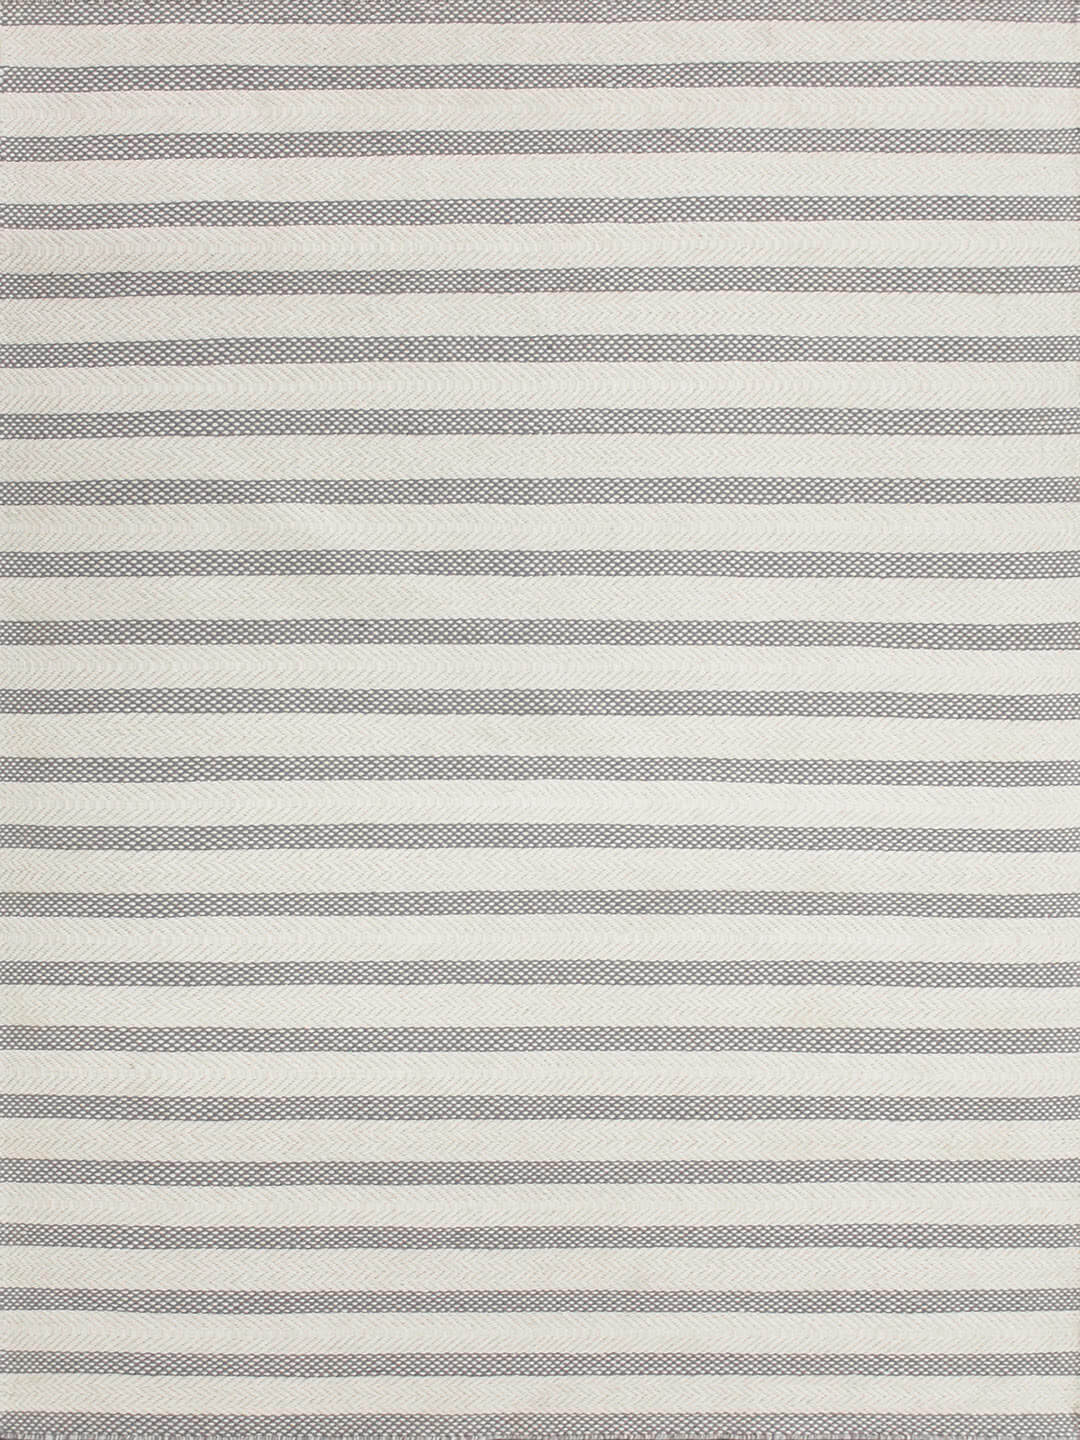 handmade-from-100%-wool-in-neutral-ivory-with-stripe-in-classic-navy-or-grey